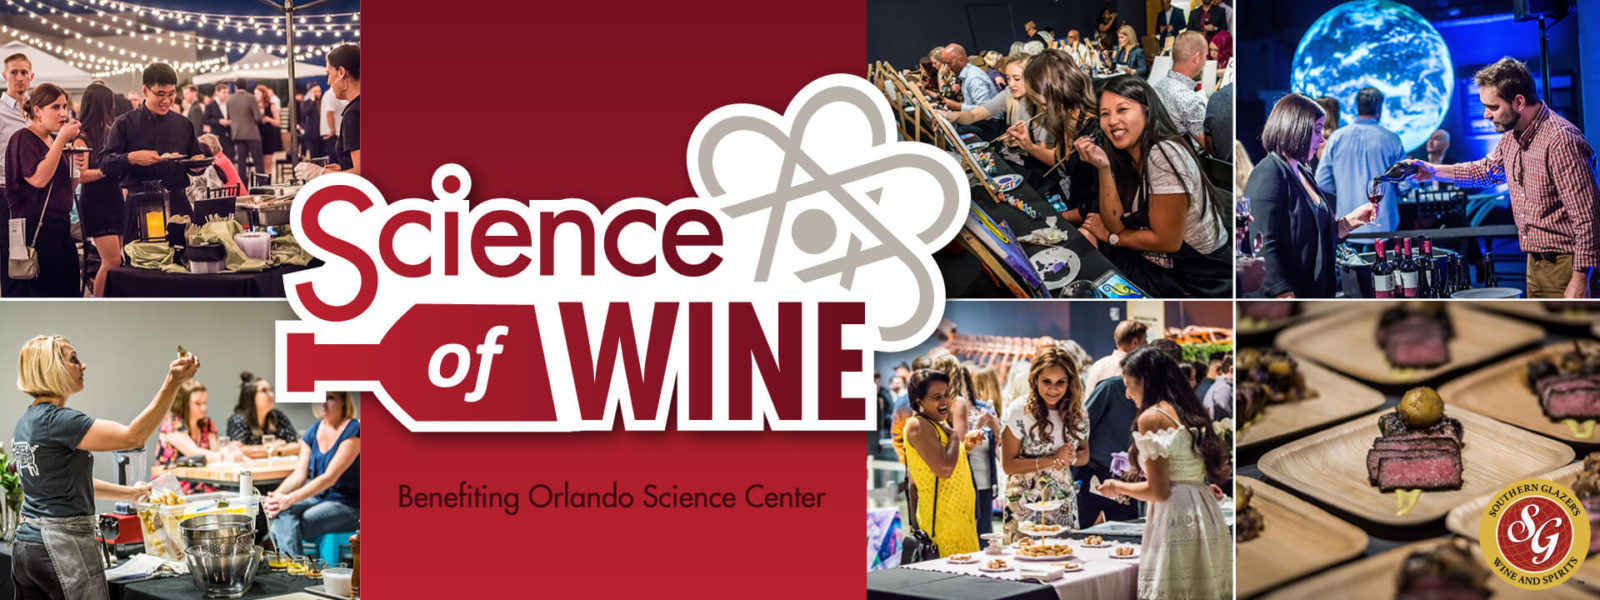 Science of Wine Orlando Science Center 2019